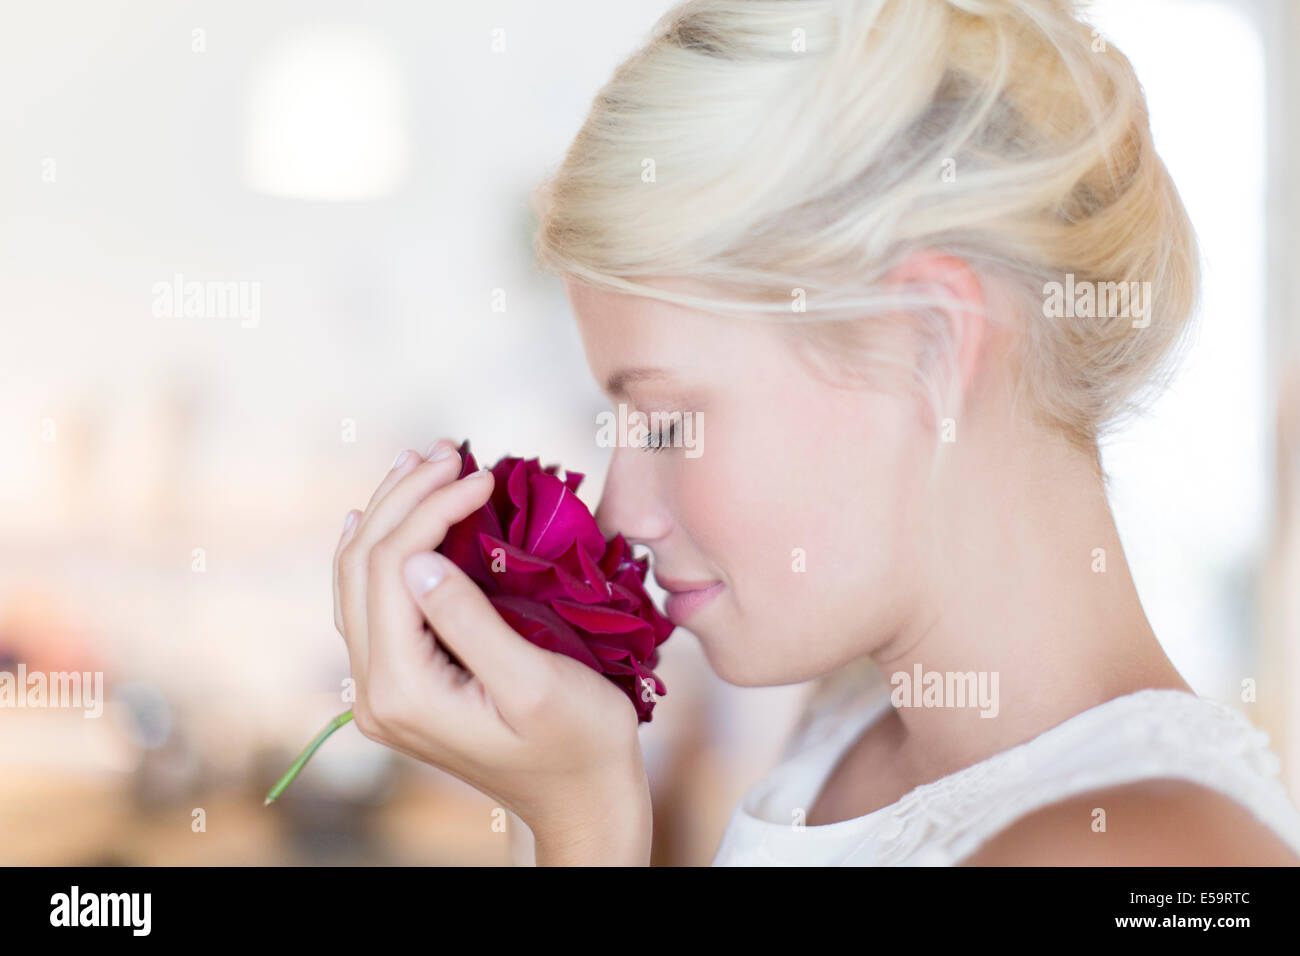 Woman smelling rose - Stock Image